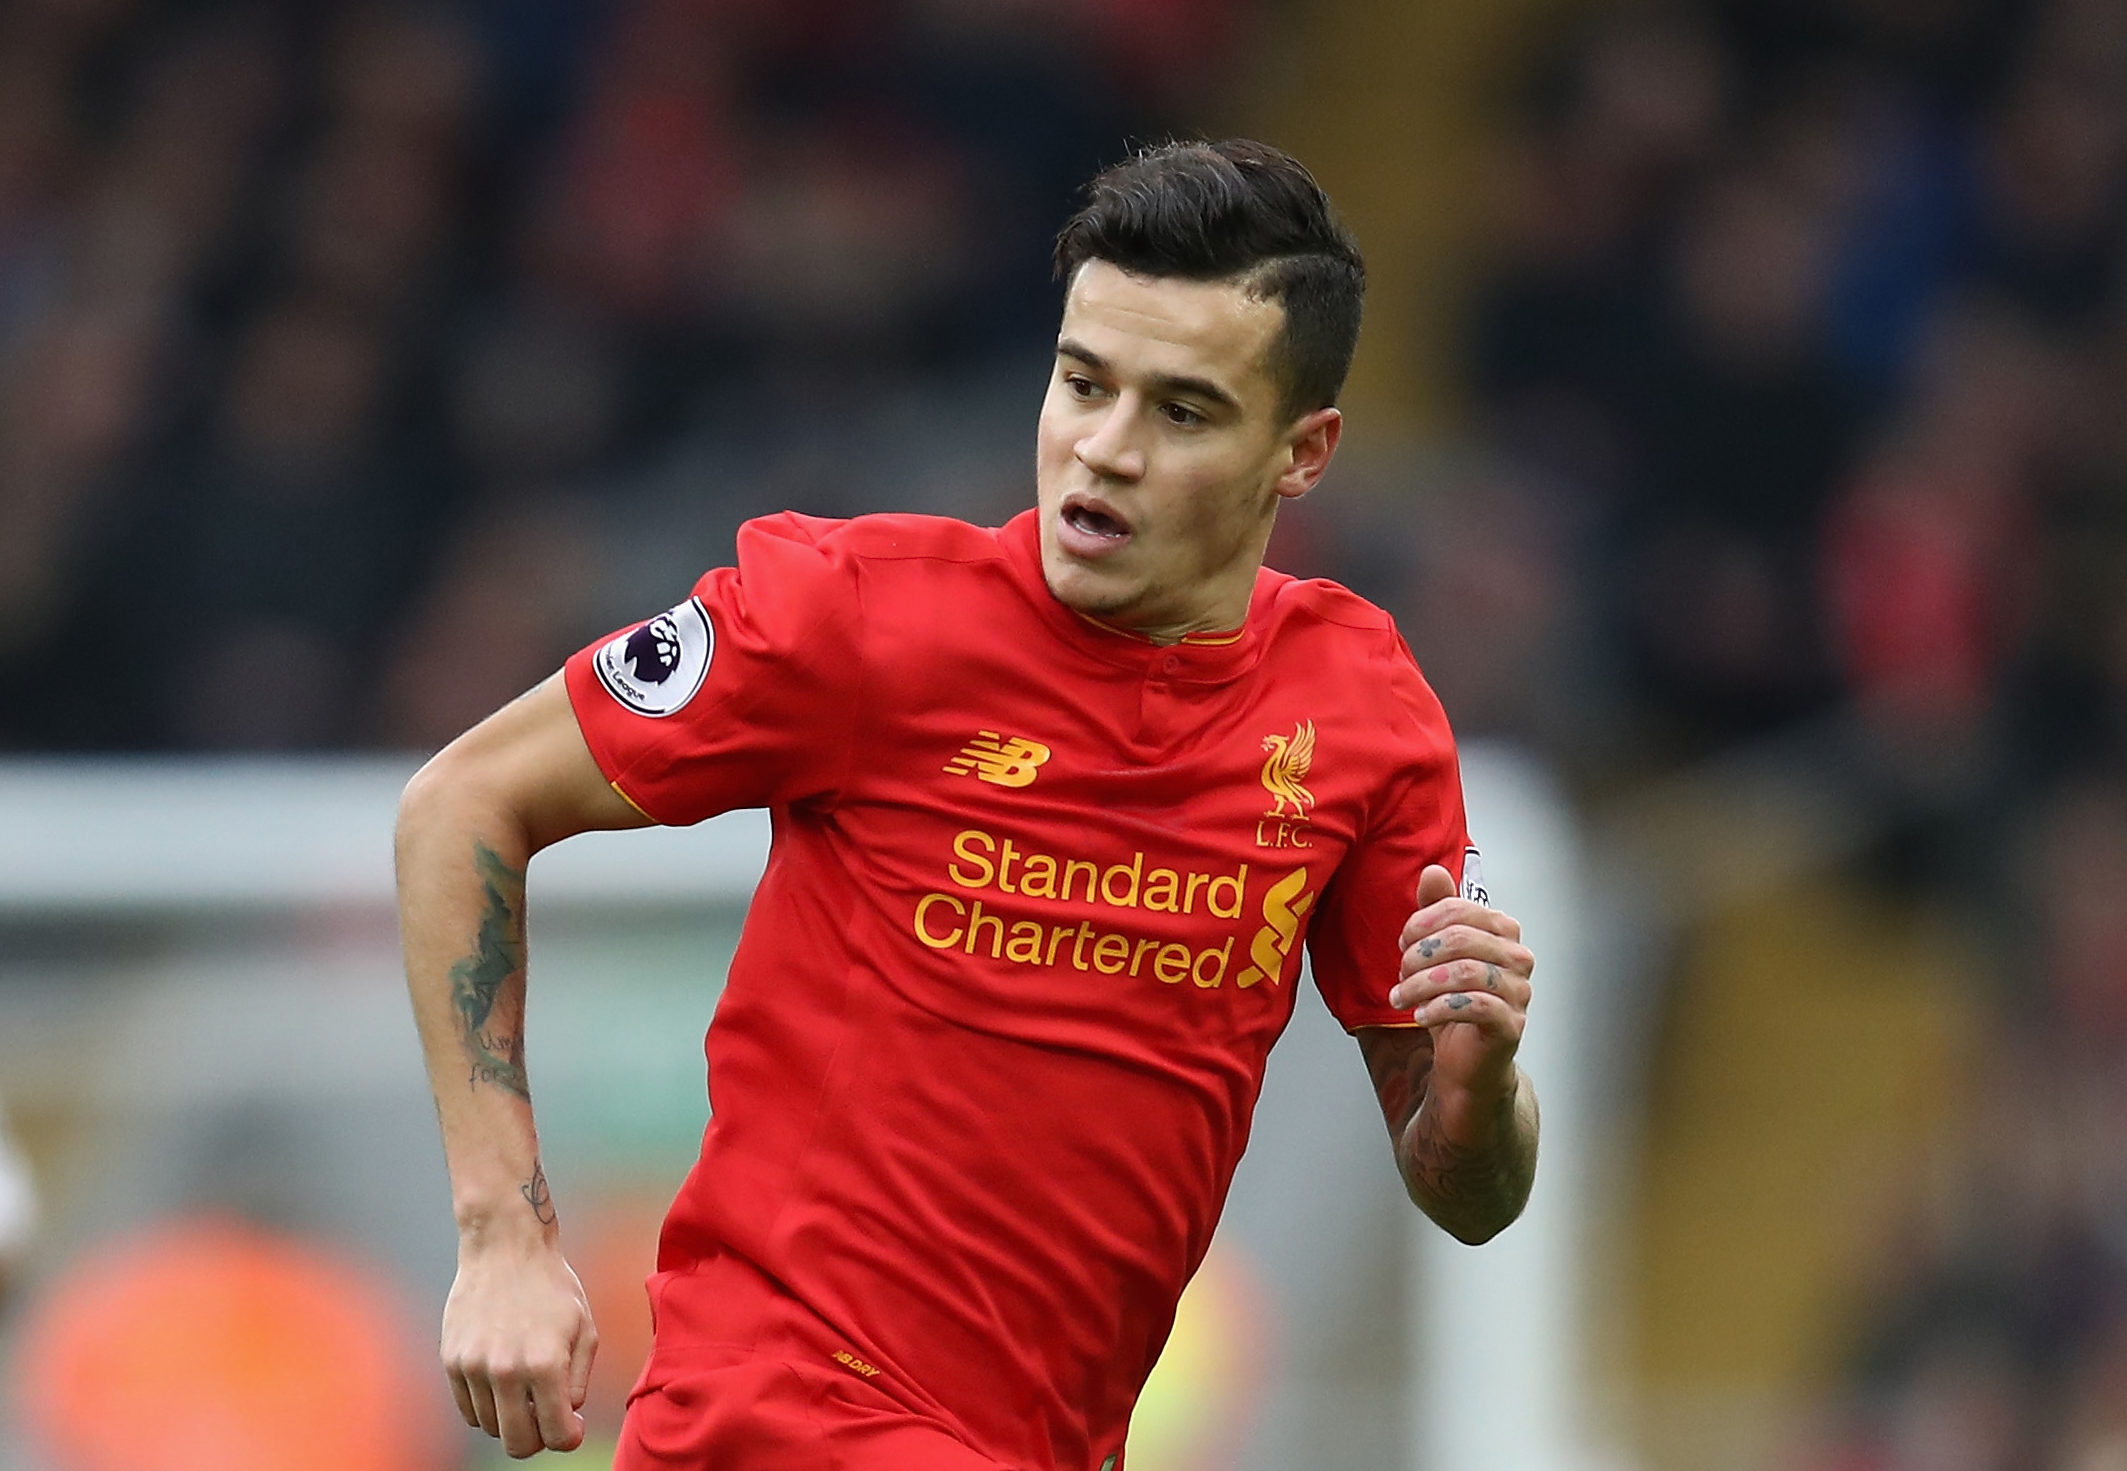 Jurgen Klopp explains Philippe Coutinho substitution against Swansea